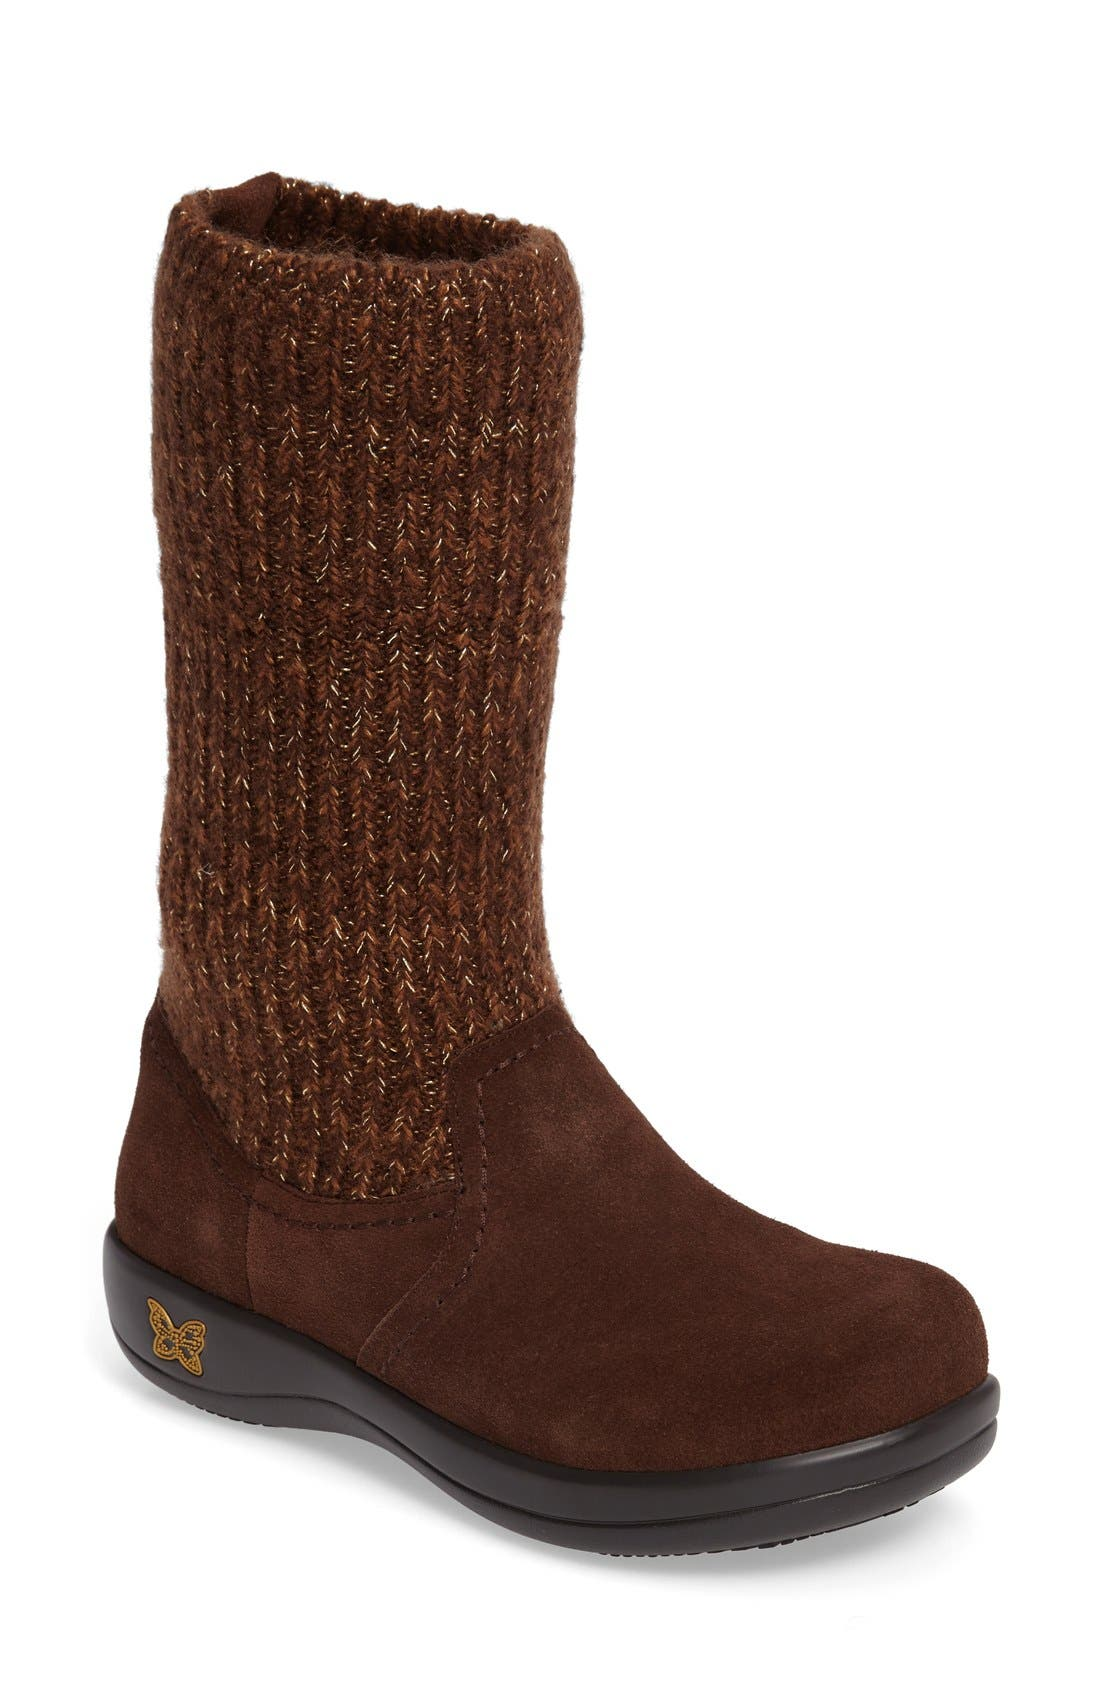 Alternate Image 1 Selected - Alegria Juneau Leather Boot (Women)